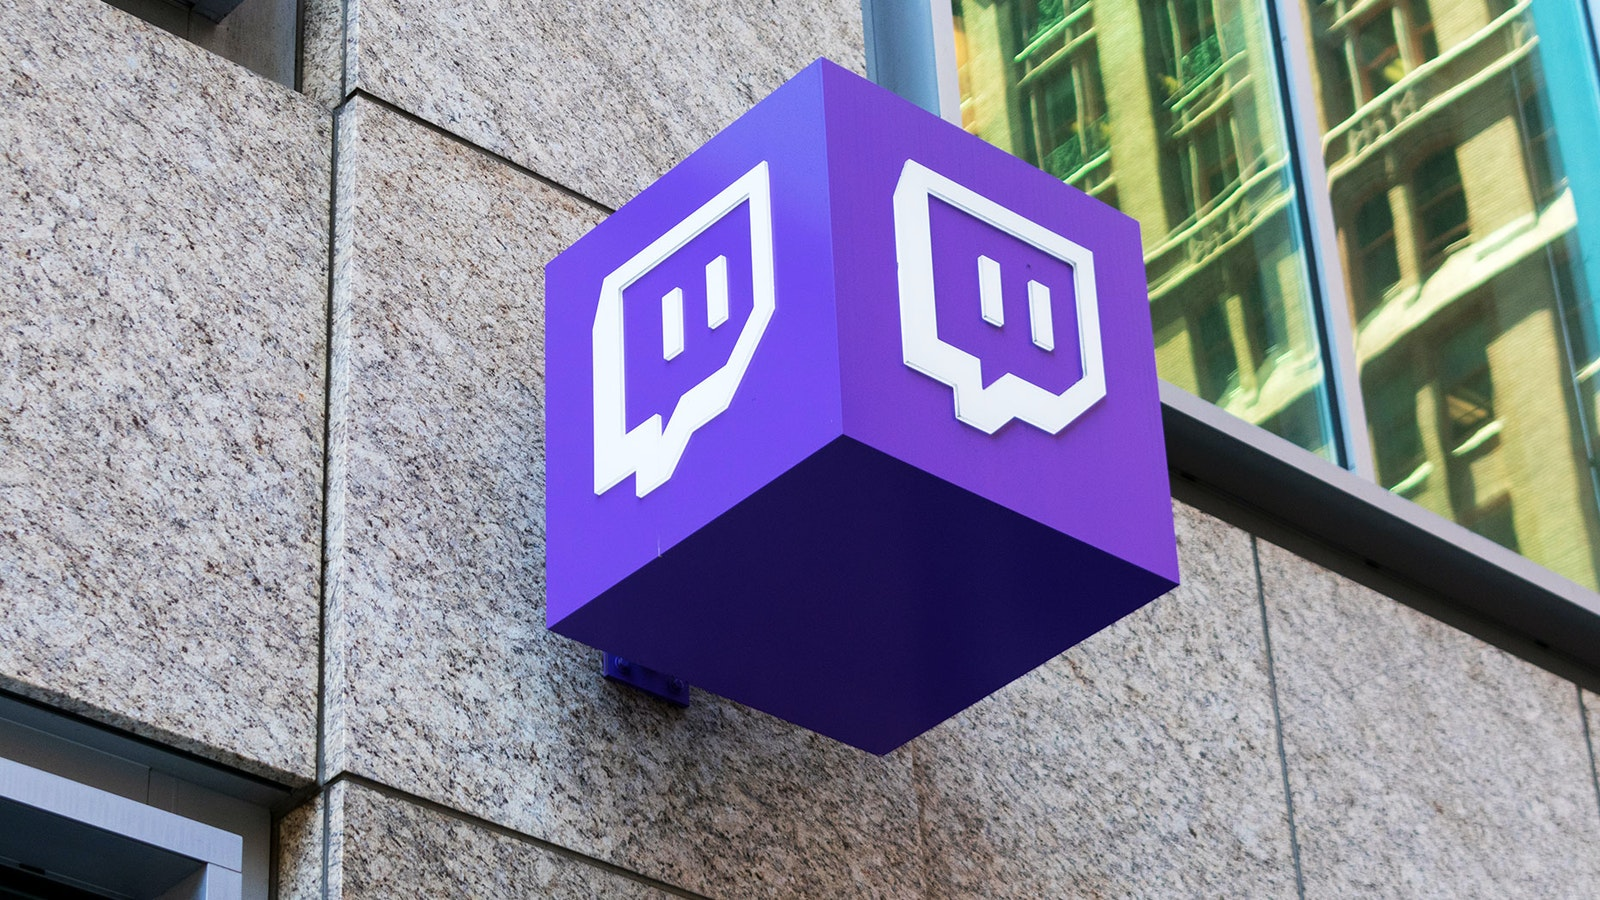 Twitch headquarters in San Francisco. Photo by Shutterstock